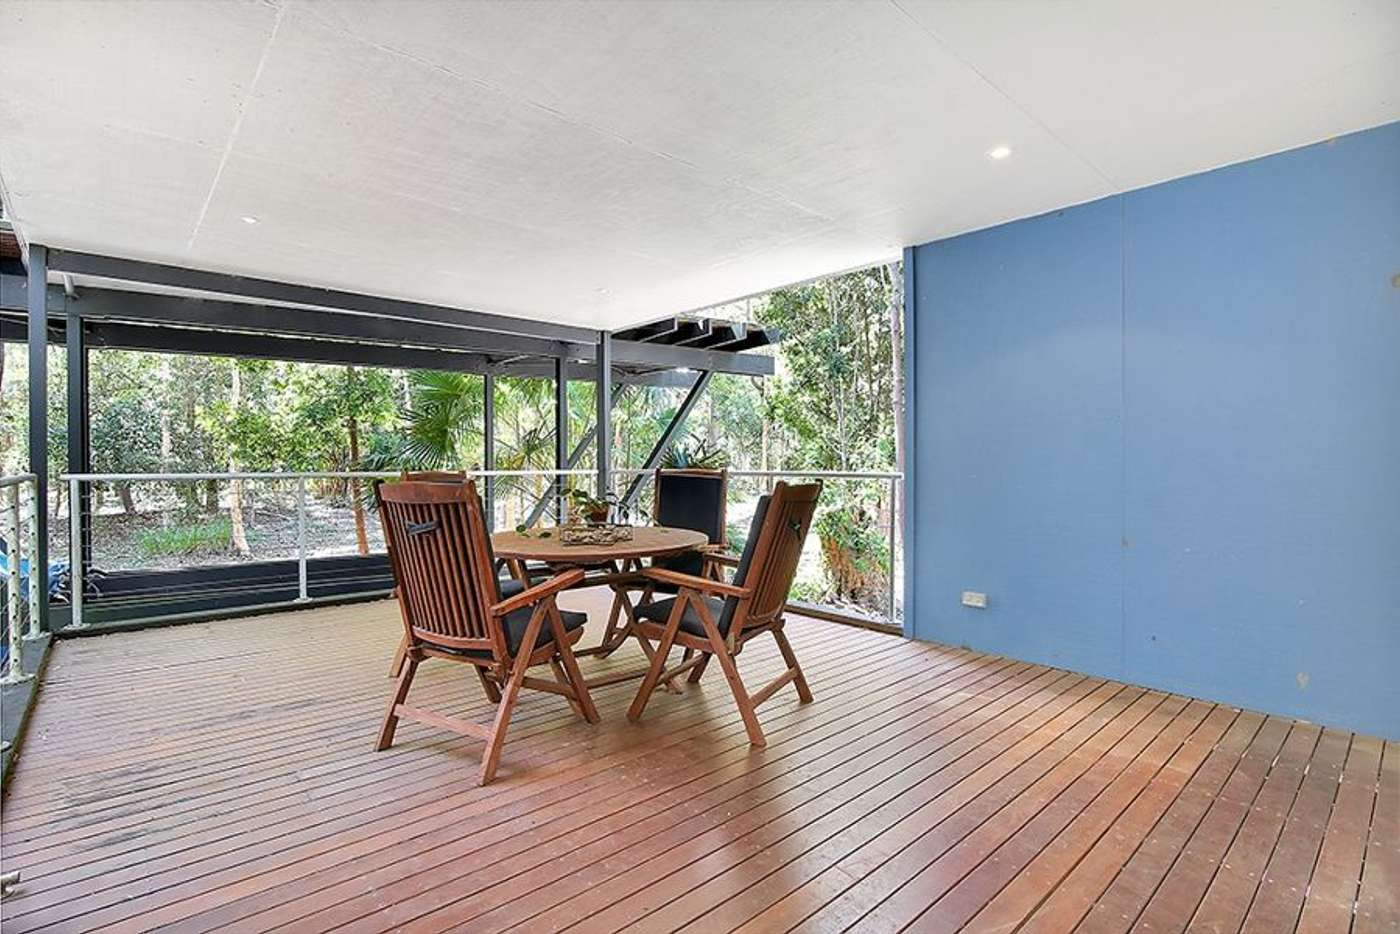 Sixth view of Homely house listing, 3 Bed VILLA, Couran Cove Resort, South Stradbroke QLD 4216